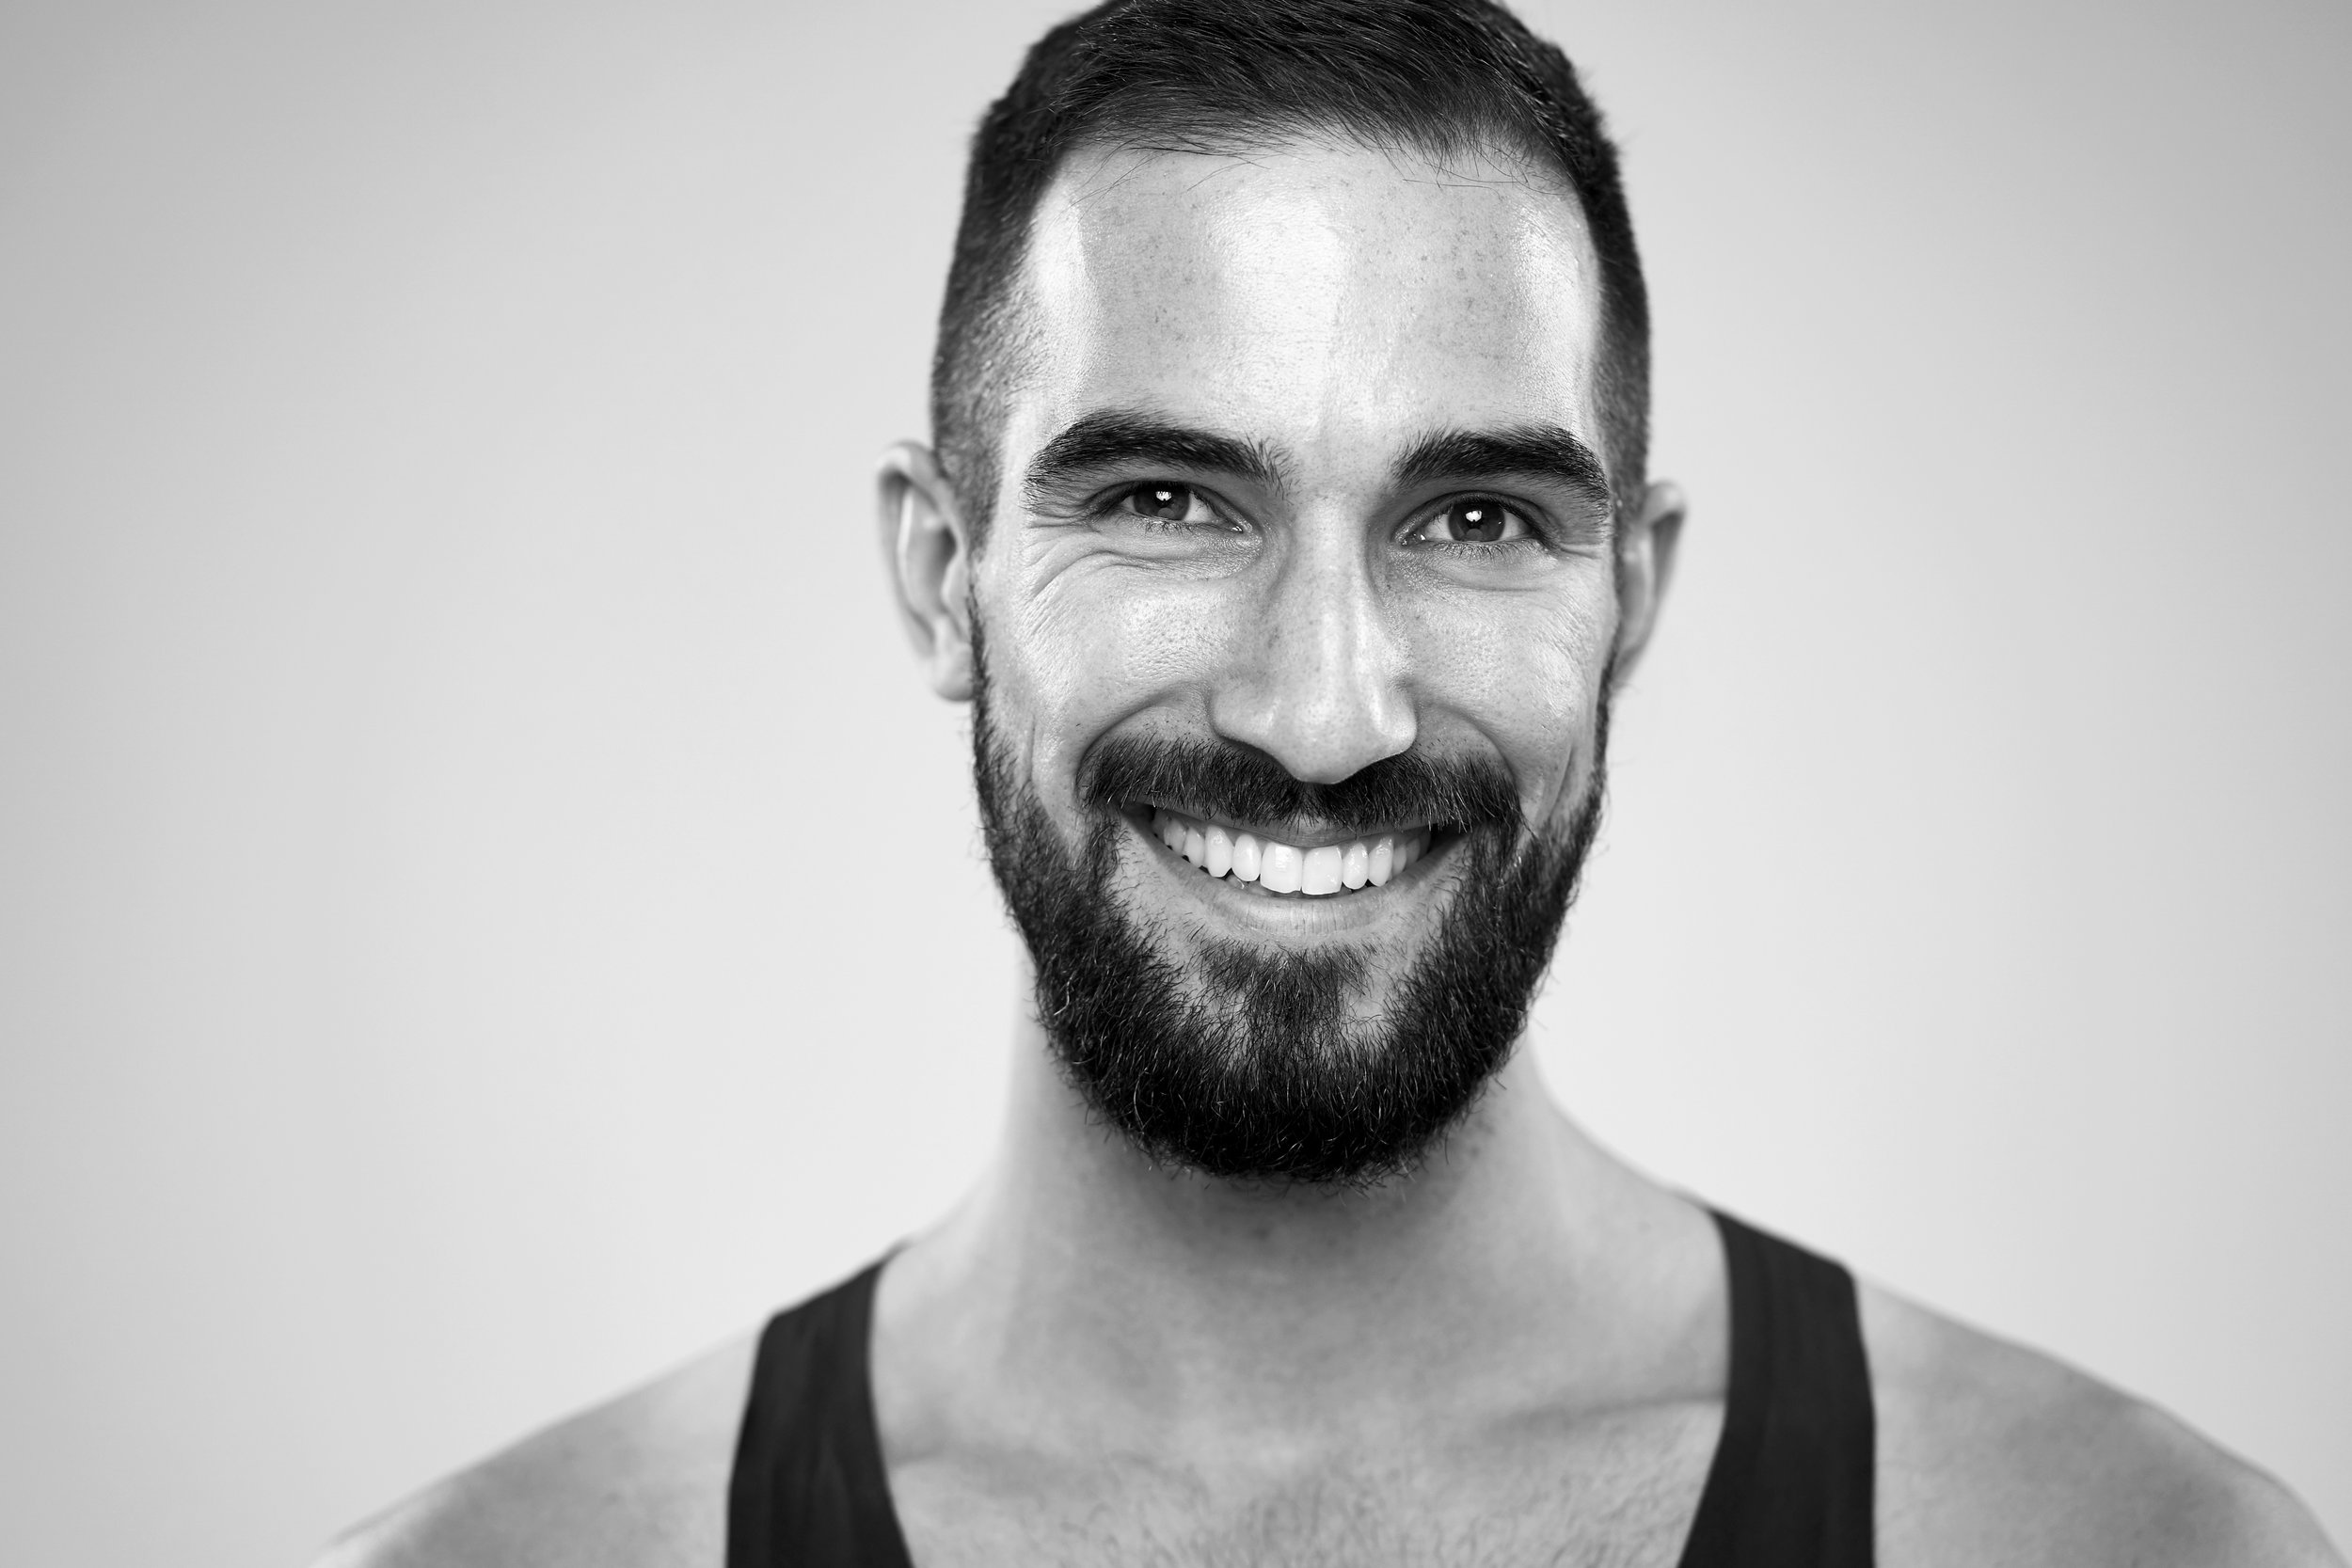 James-Rafael-mens-yoga-teacher-london.jpg